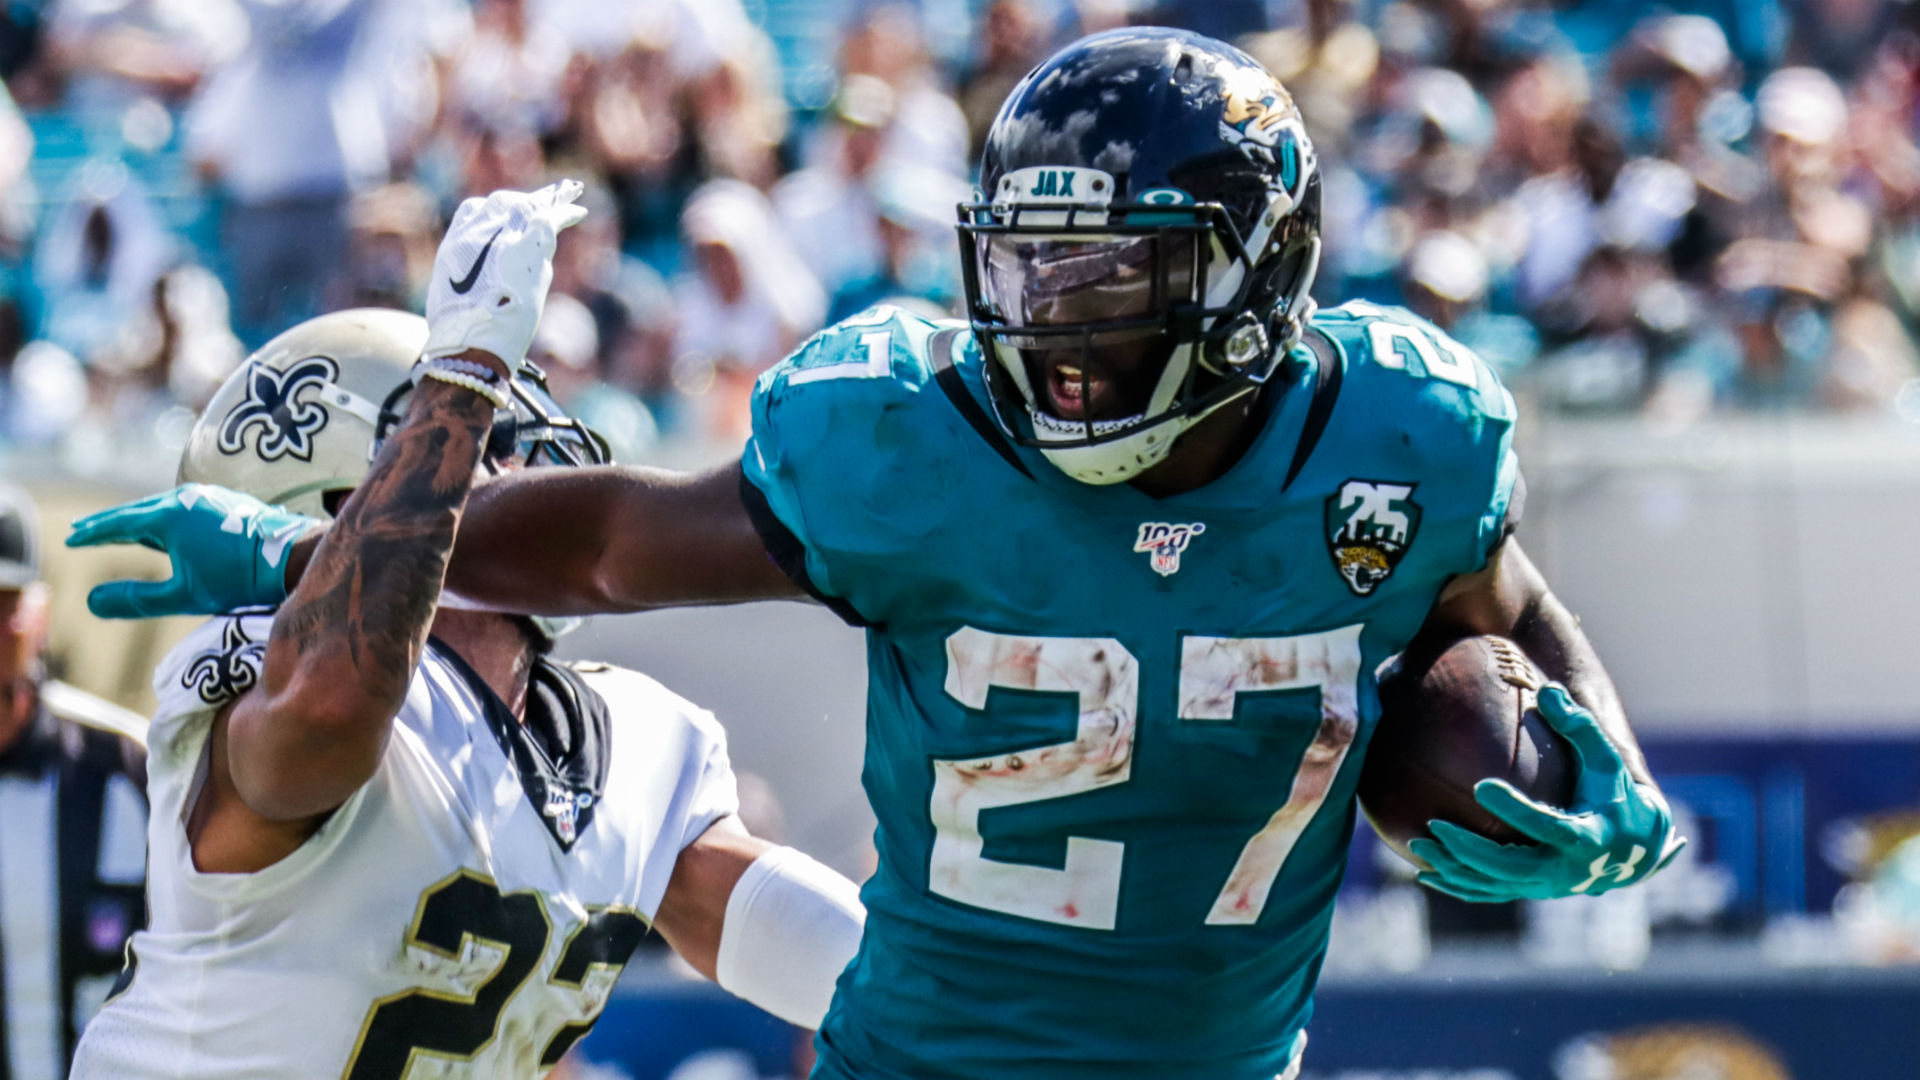 Predicting Week 9 fantasy football sleepers based on latest NFL betting line movement